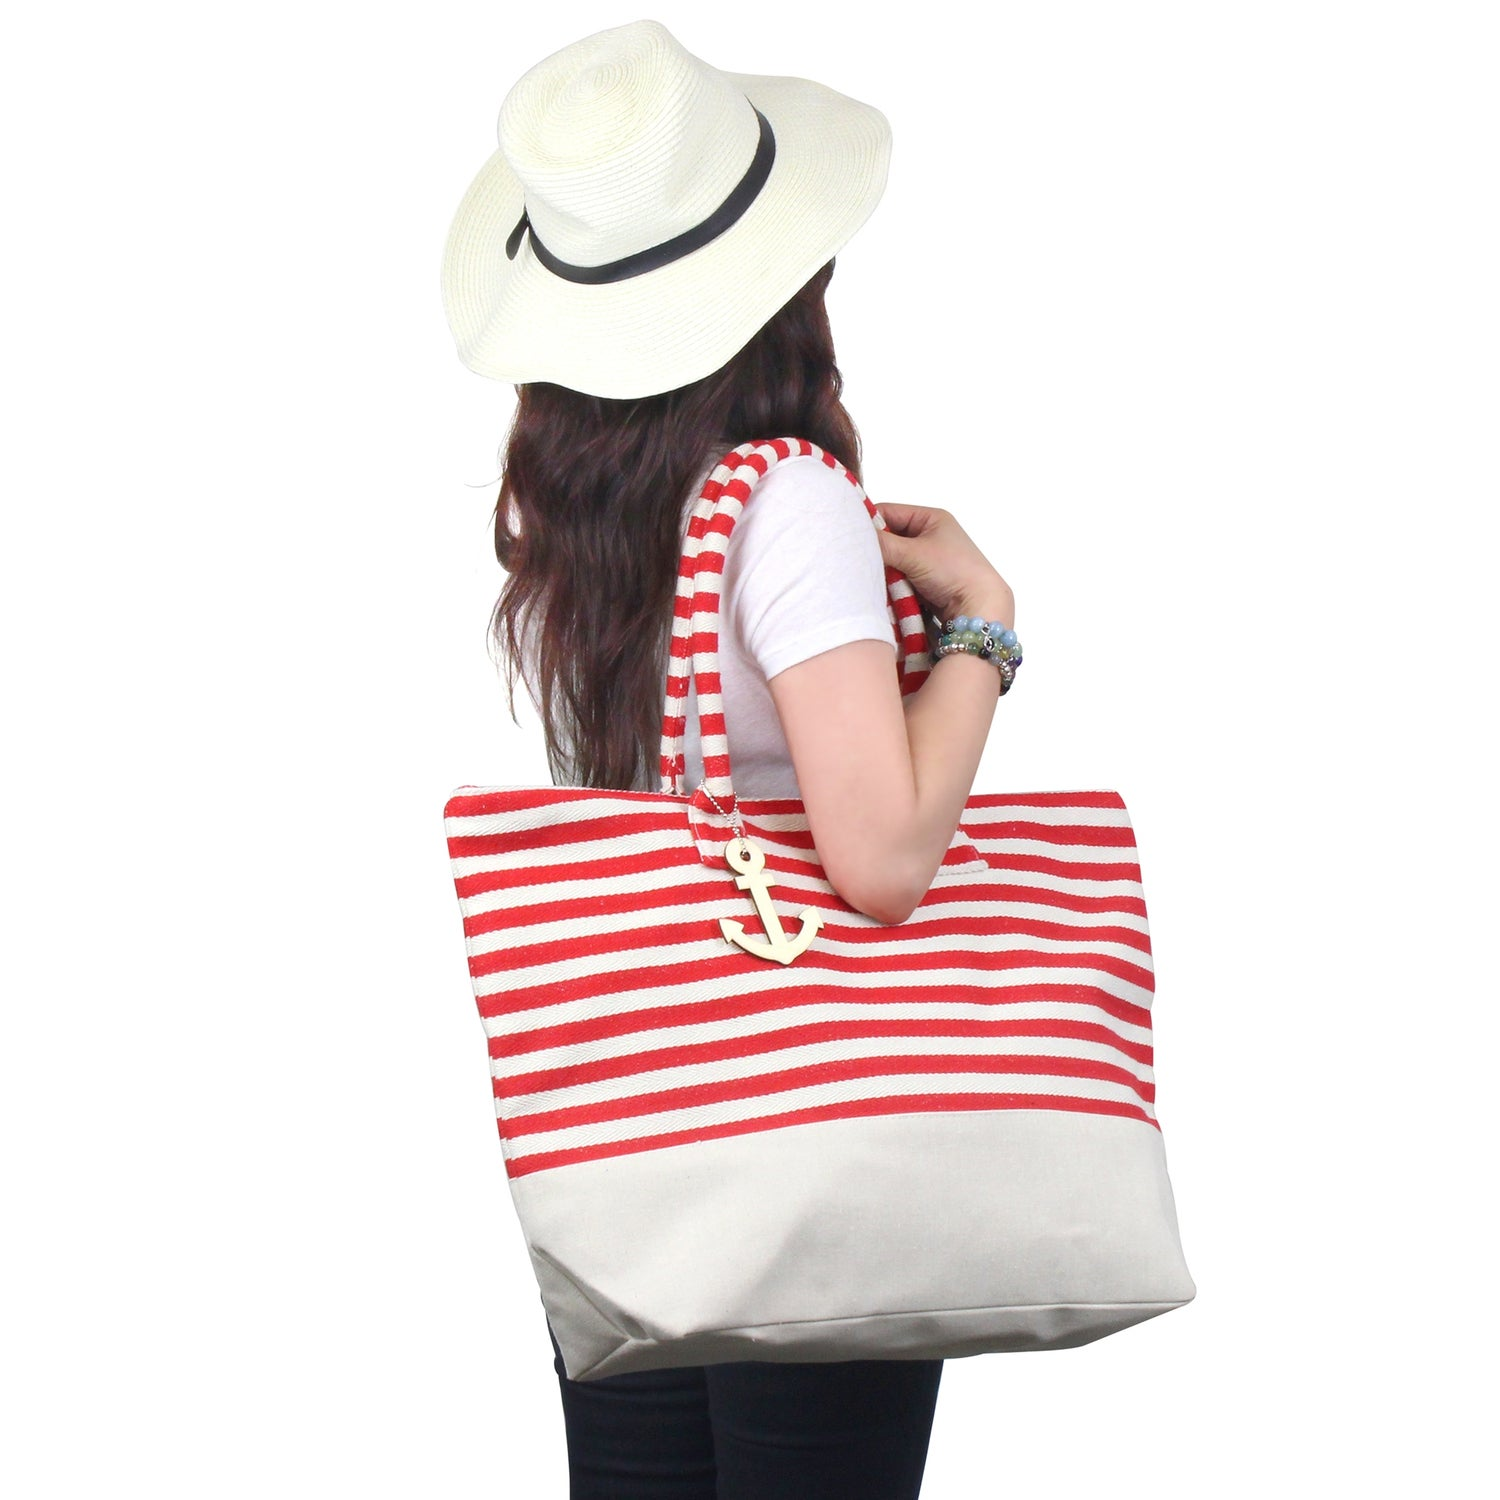 a7f12274770a Shop Zodaca Red  White Stripes Women Handbag Ladies Large Shoulder Tote  Purse Messenger Bag - Free Shipping On Orders Over  45 - Overstock.com -  16697609